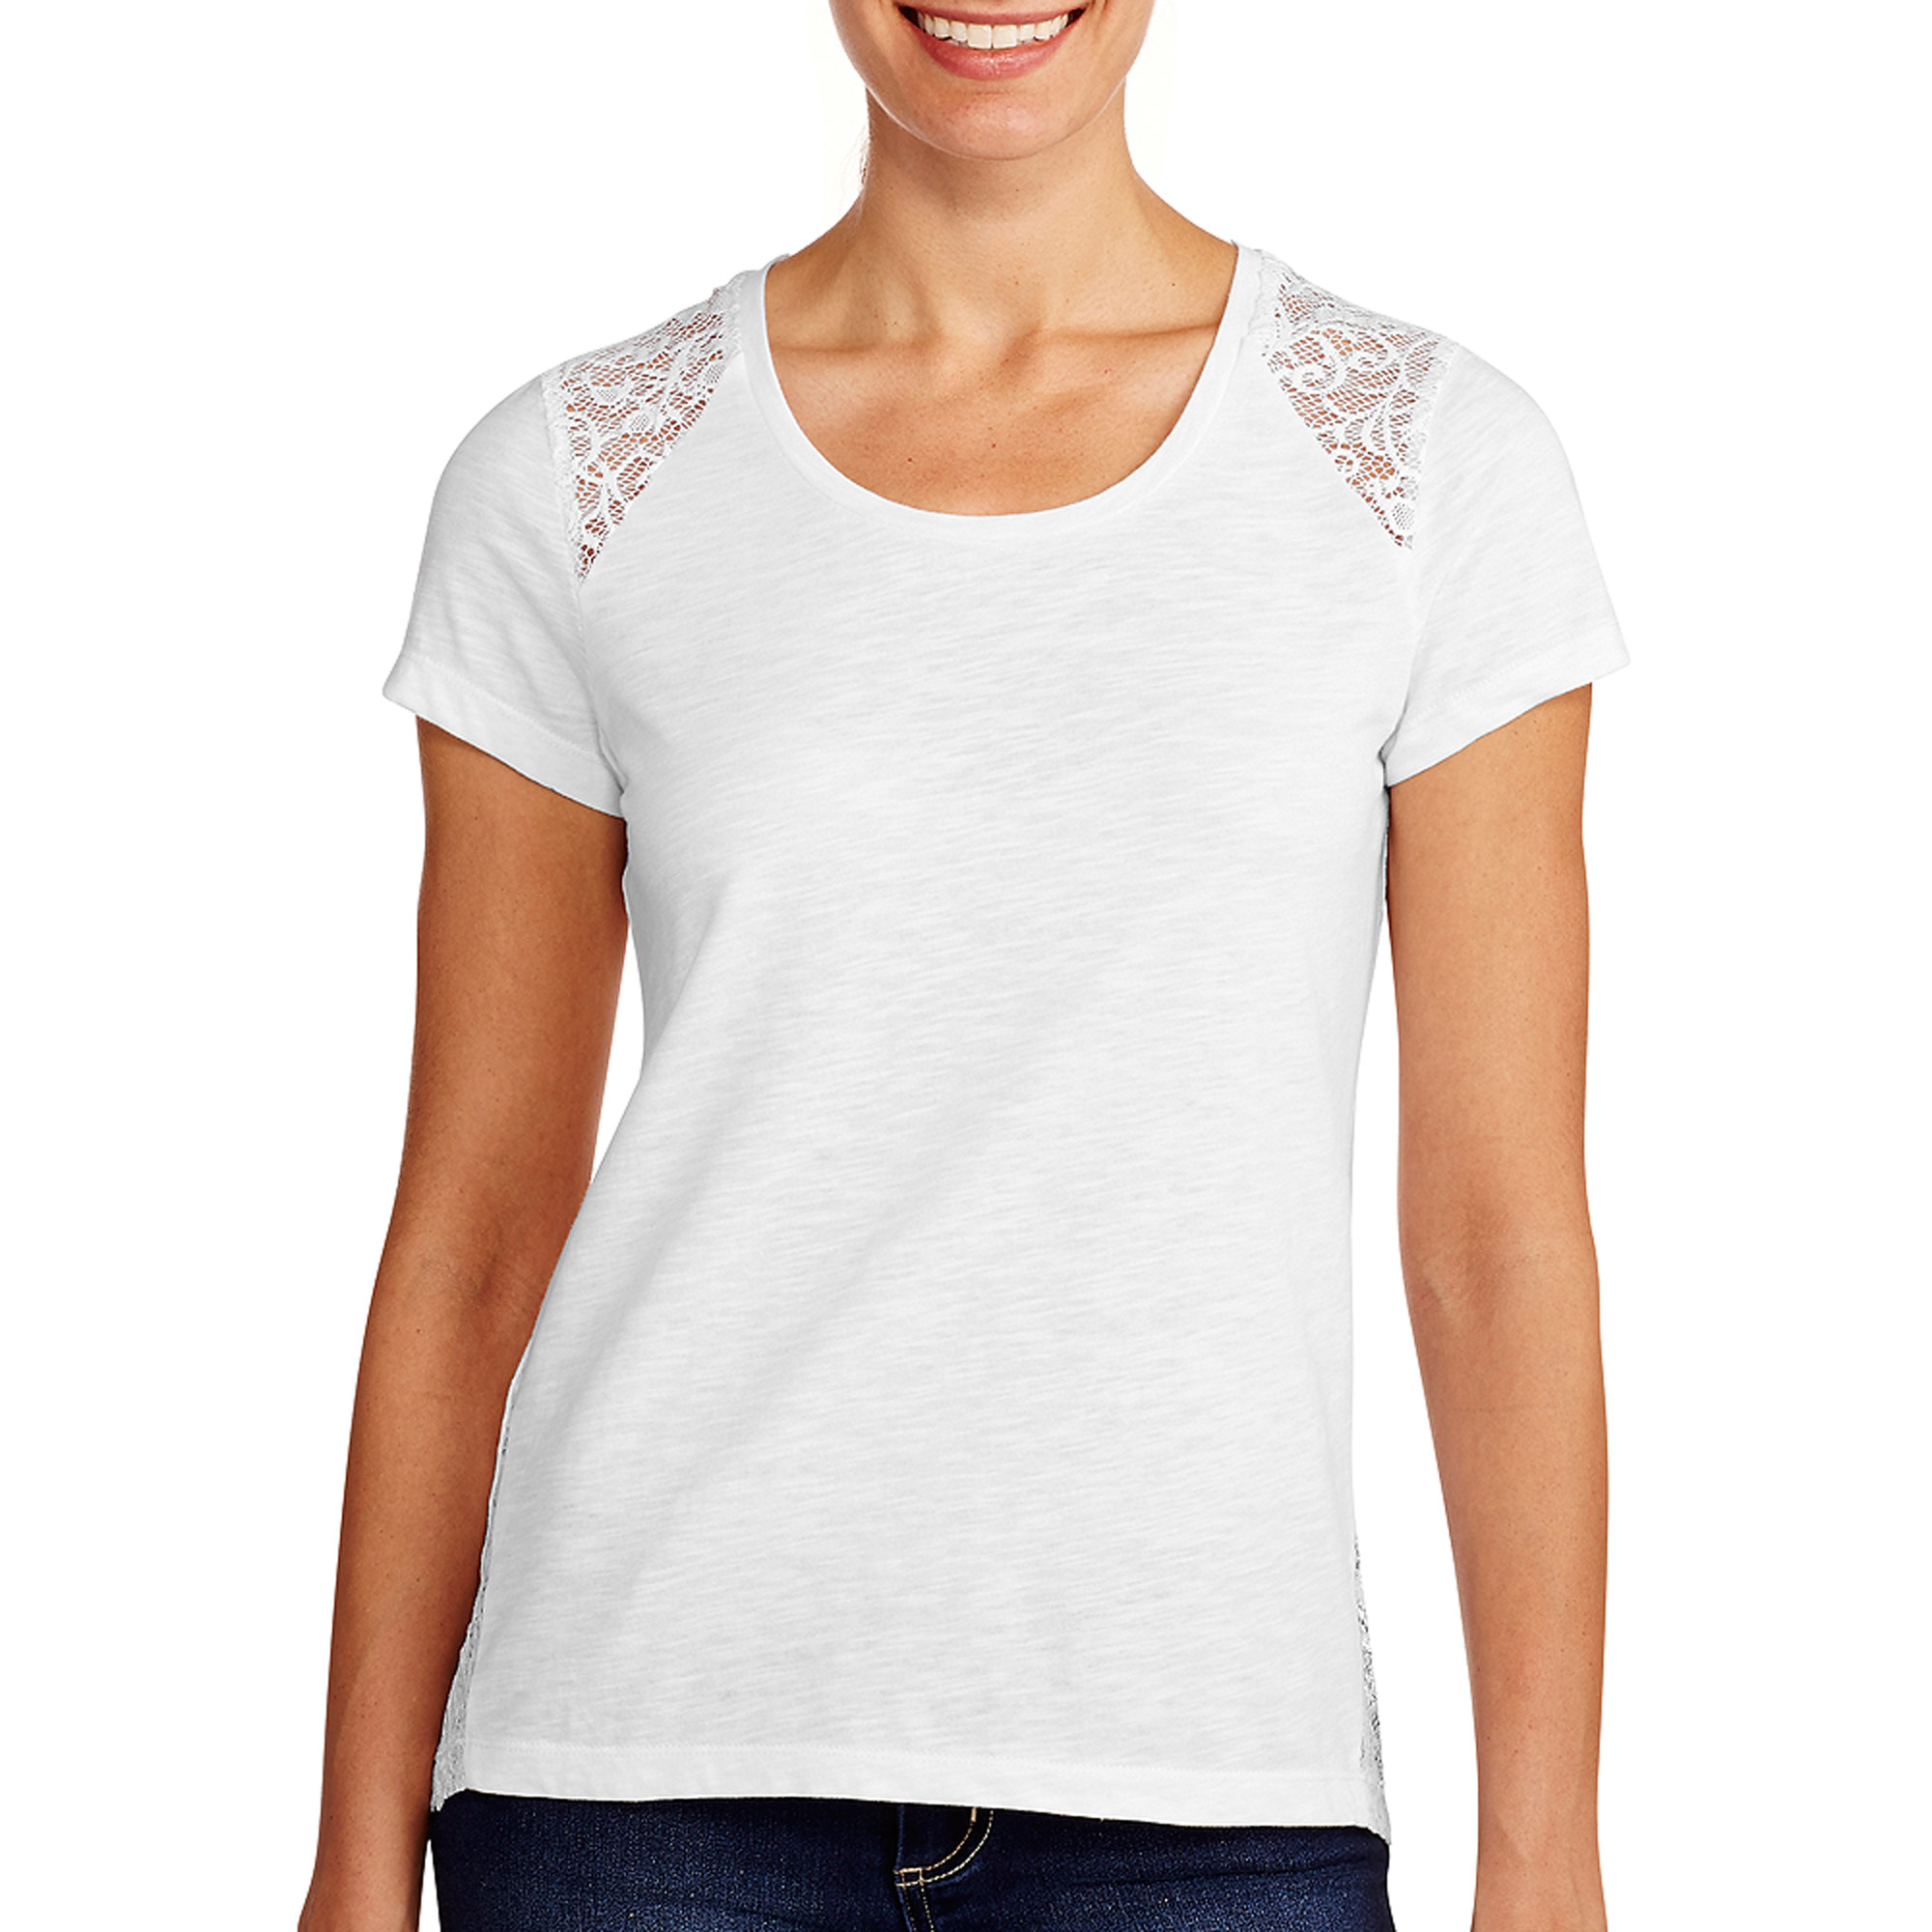 Jordache Women's Essential T-Shirt with Lace Shoulder